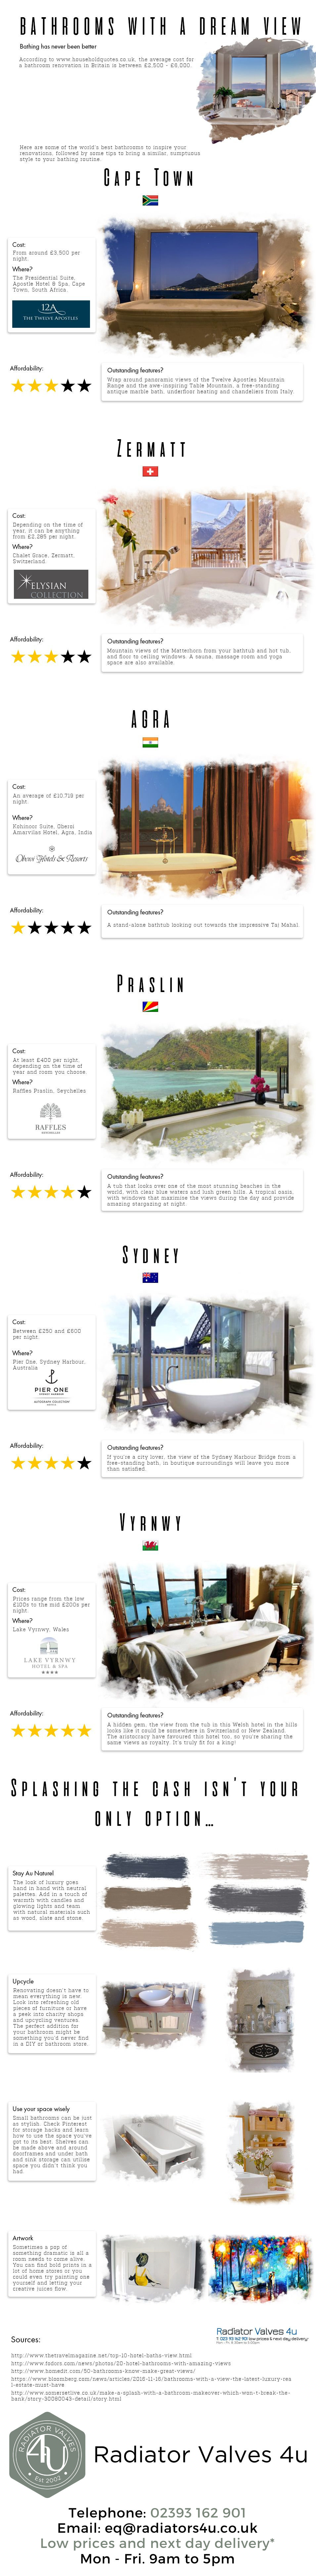 Infographic - Bathrooms with a view